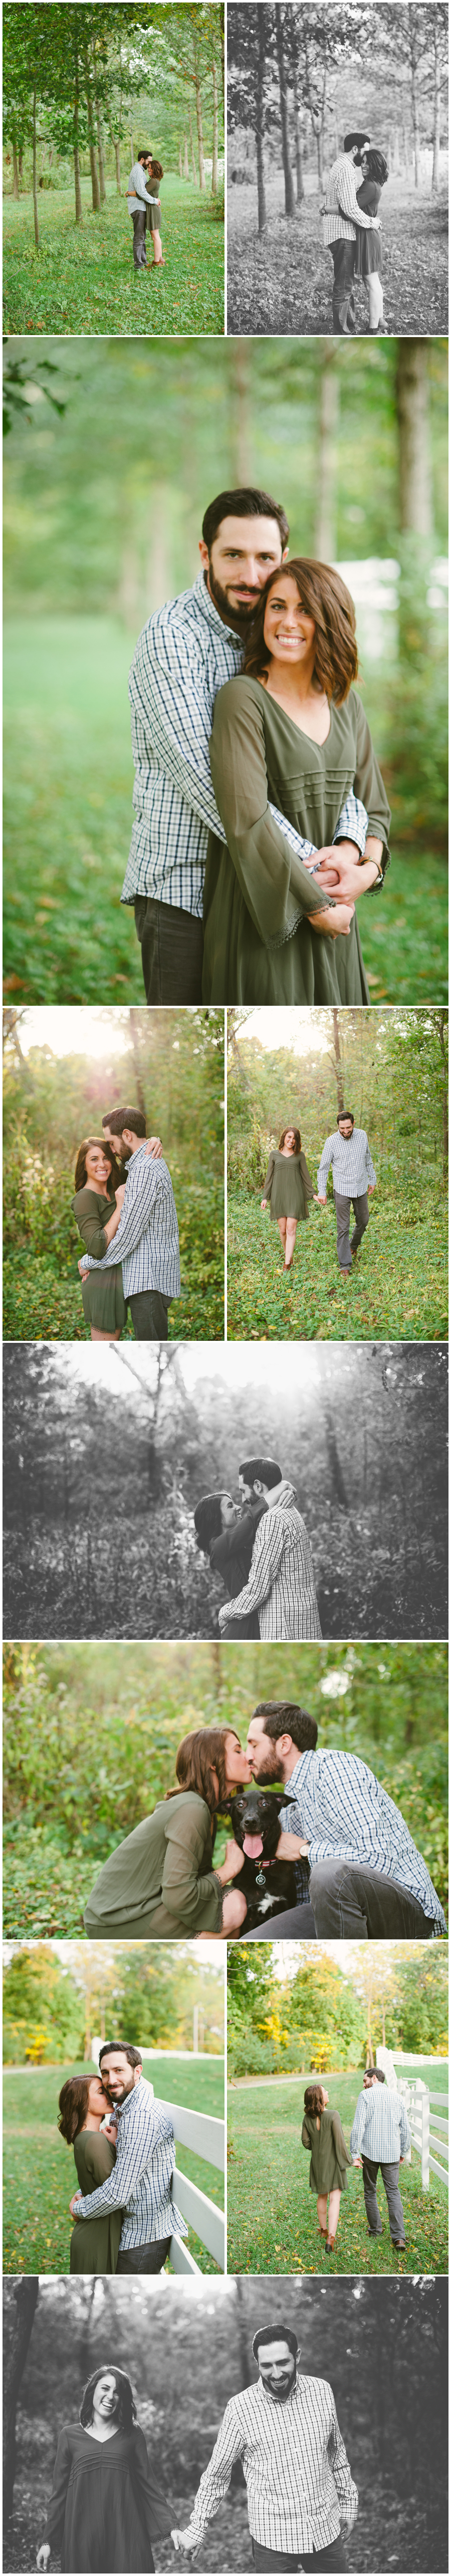 Blog Collage-Tara+Nick2